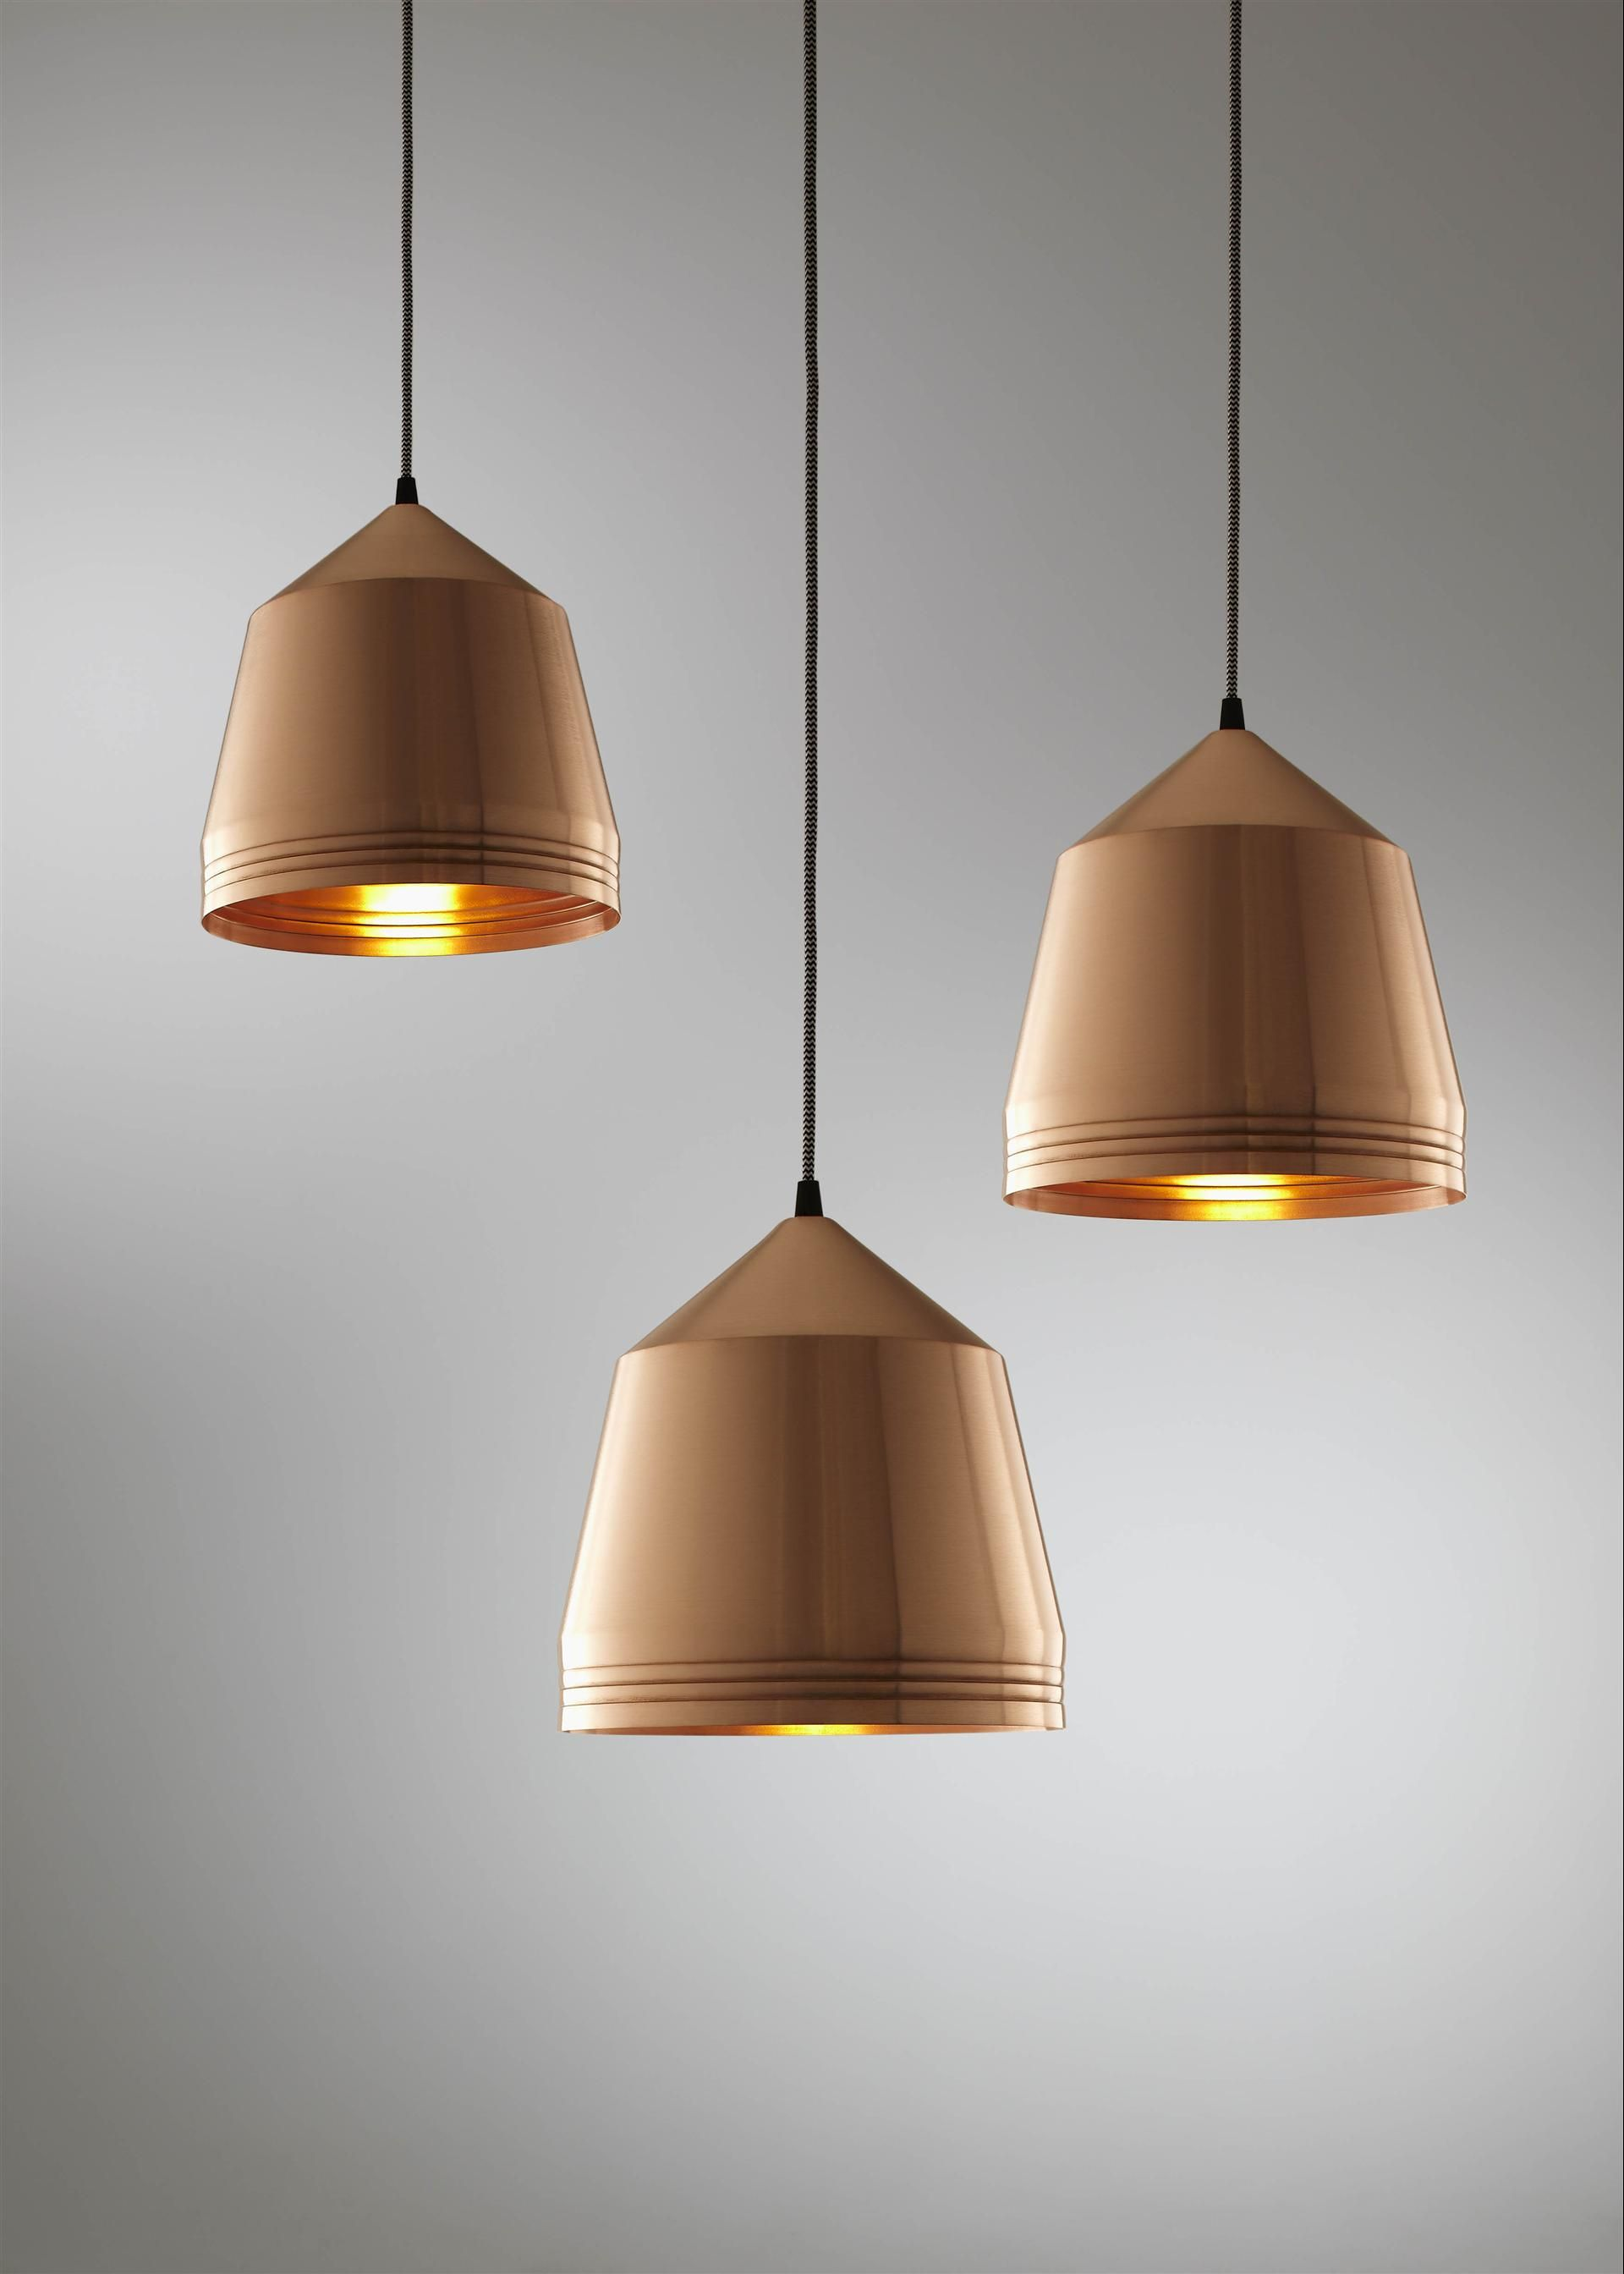 copper pendant light kitchen nj cabinets pleasant lights perth new house